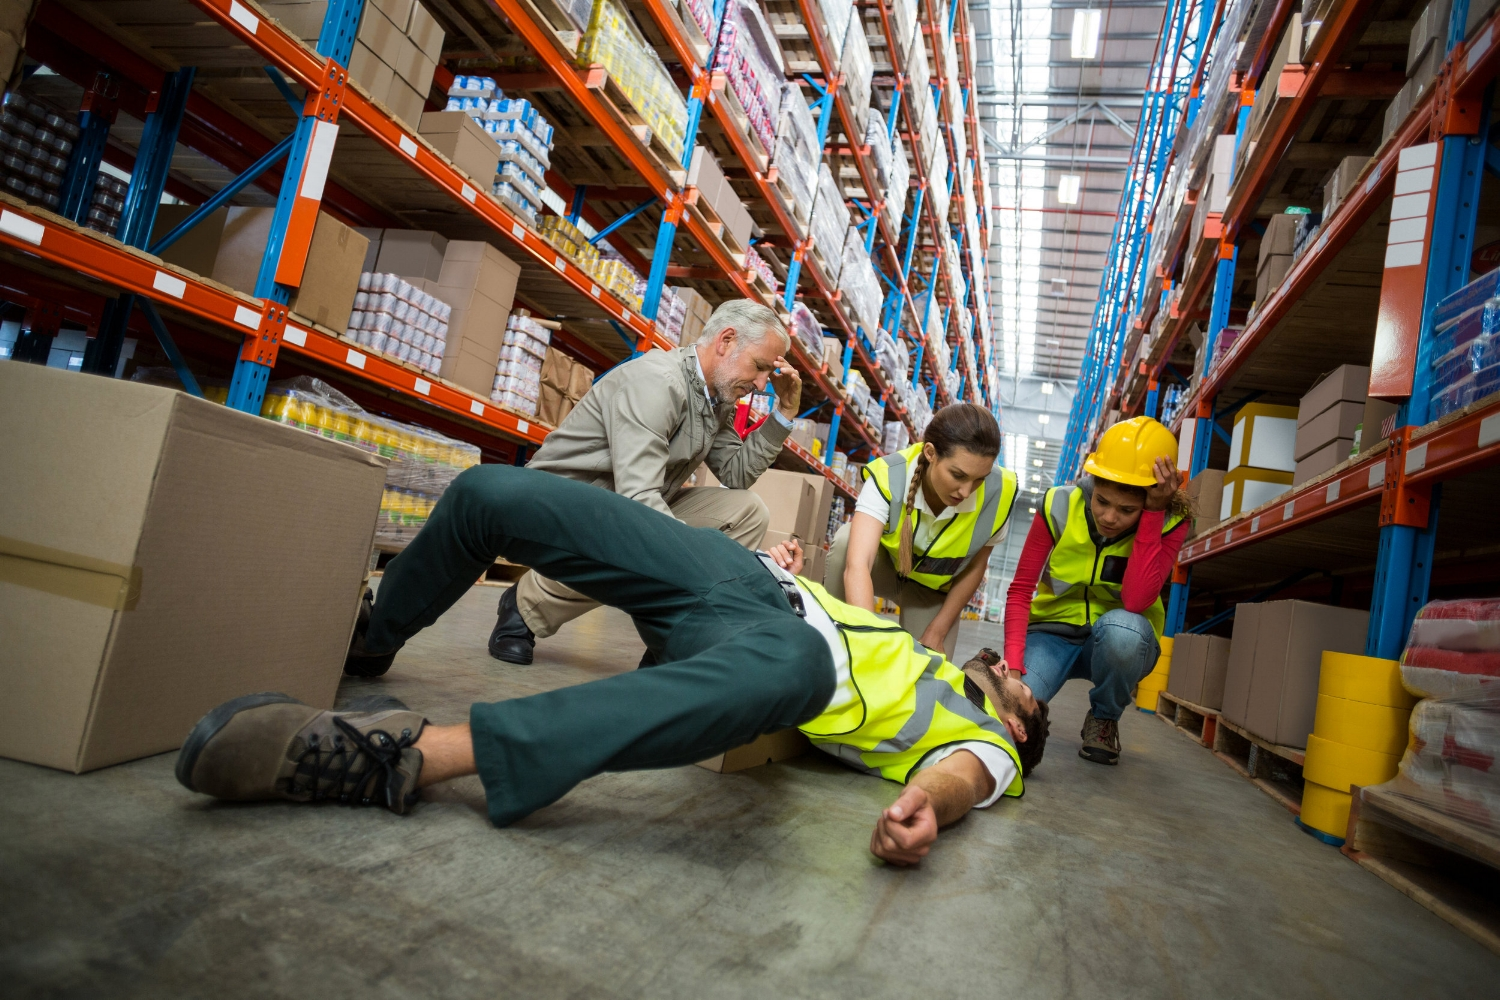 Worker-fallen-down-while-carrying-cardboard-boxes-653217366_5760x3840.jpeg